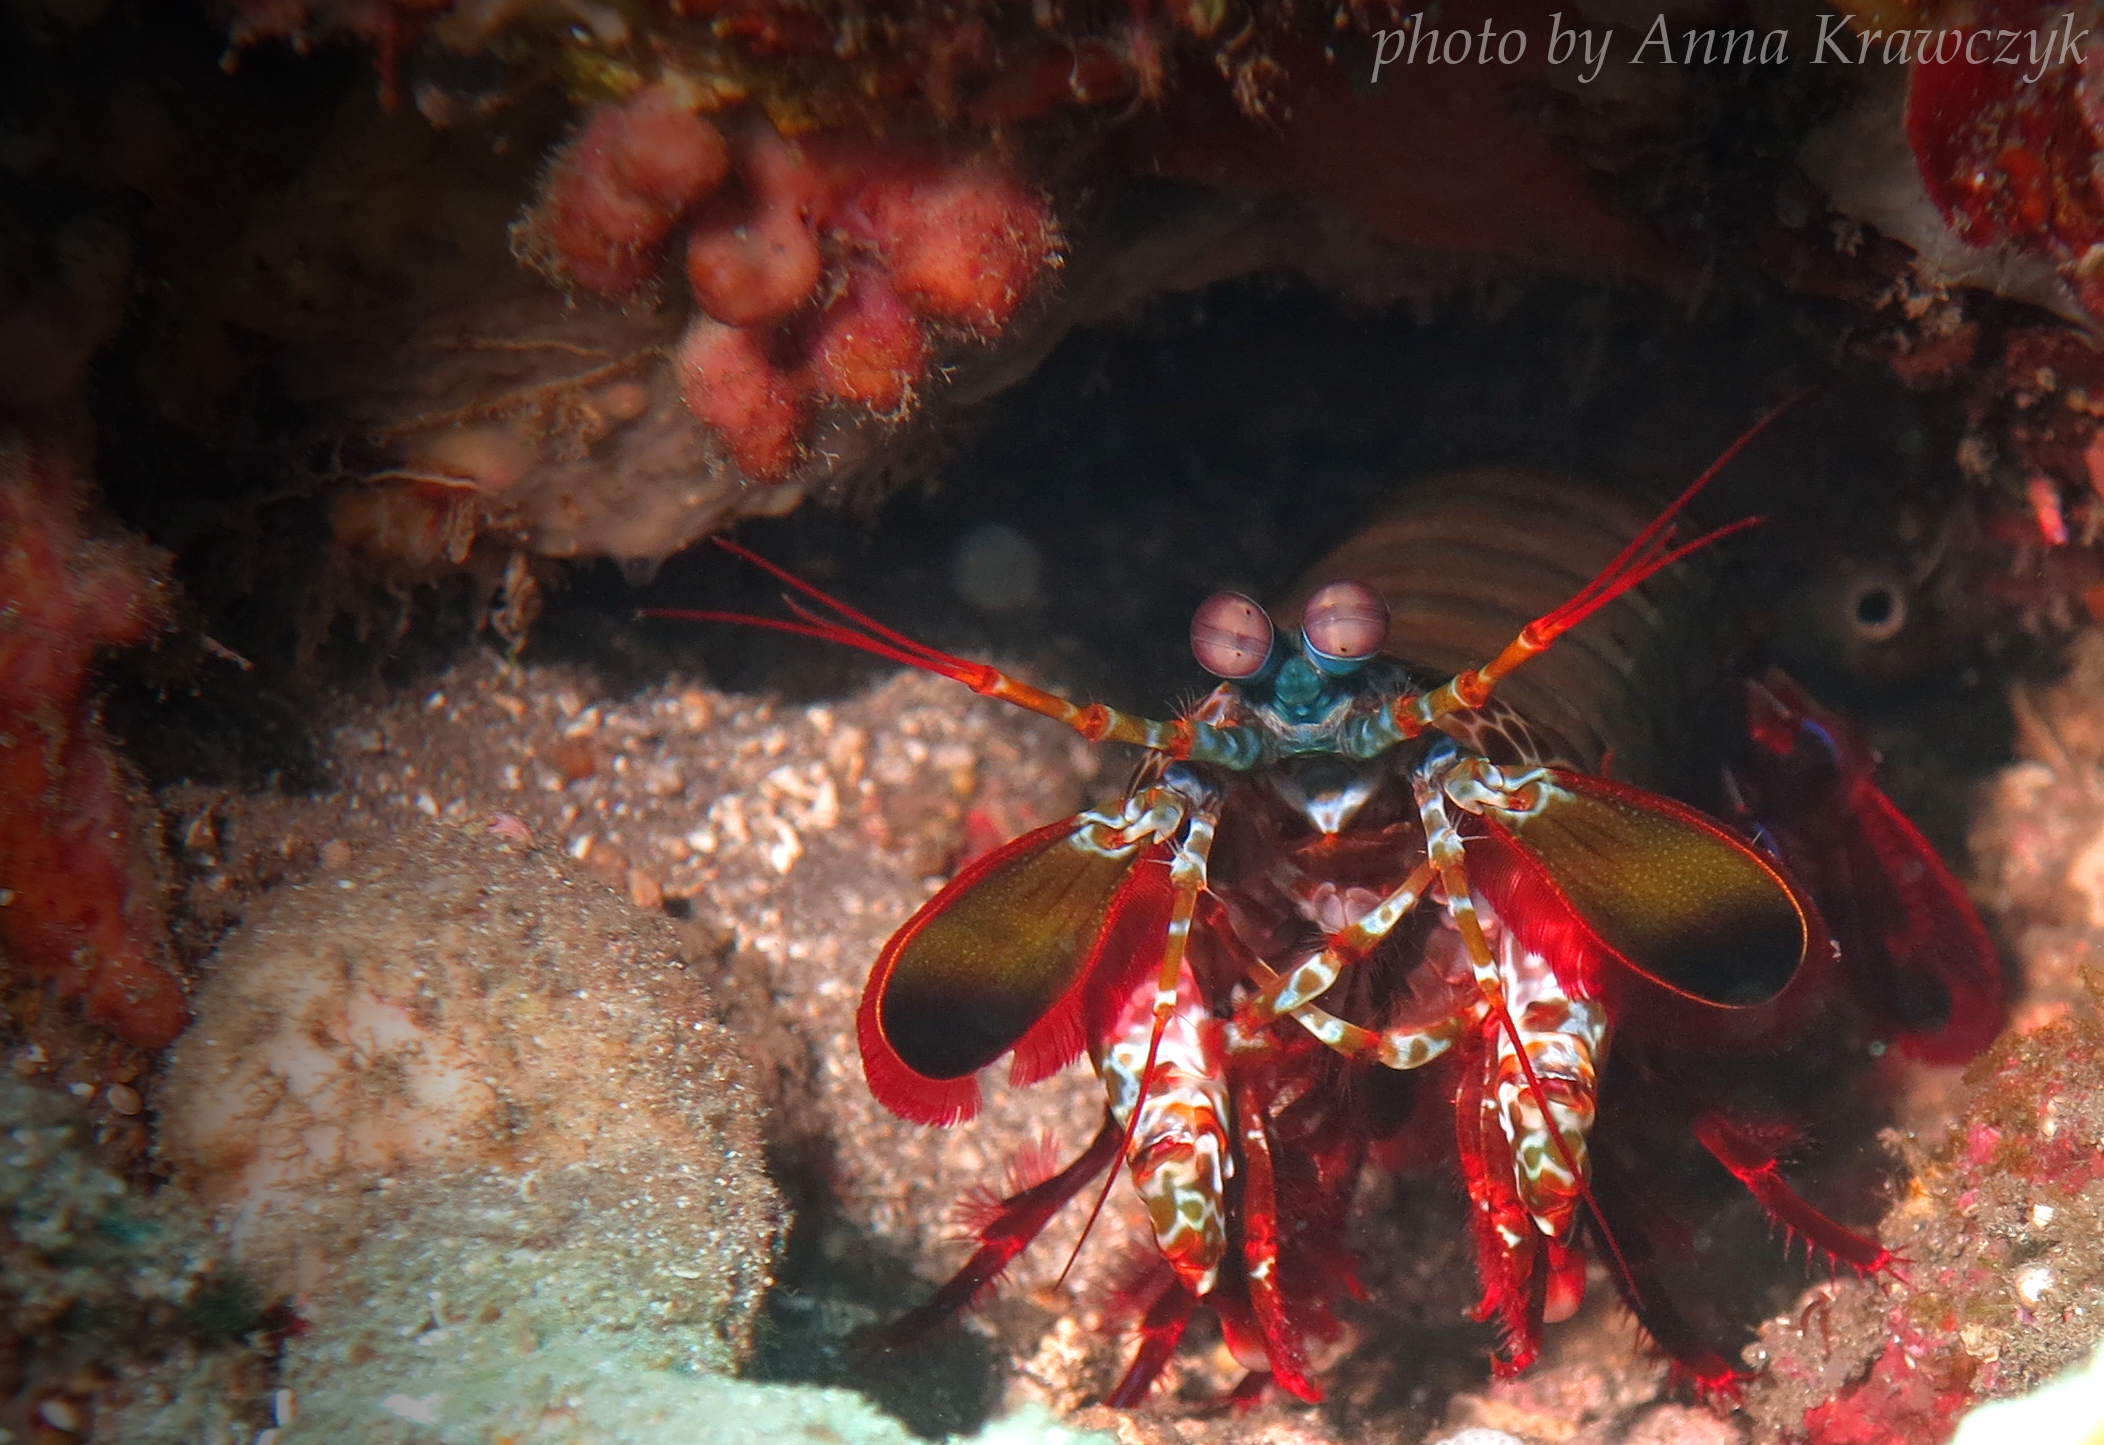 Mantis shrimp, Jemeluk Bay, Bali